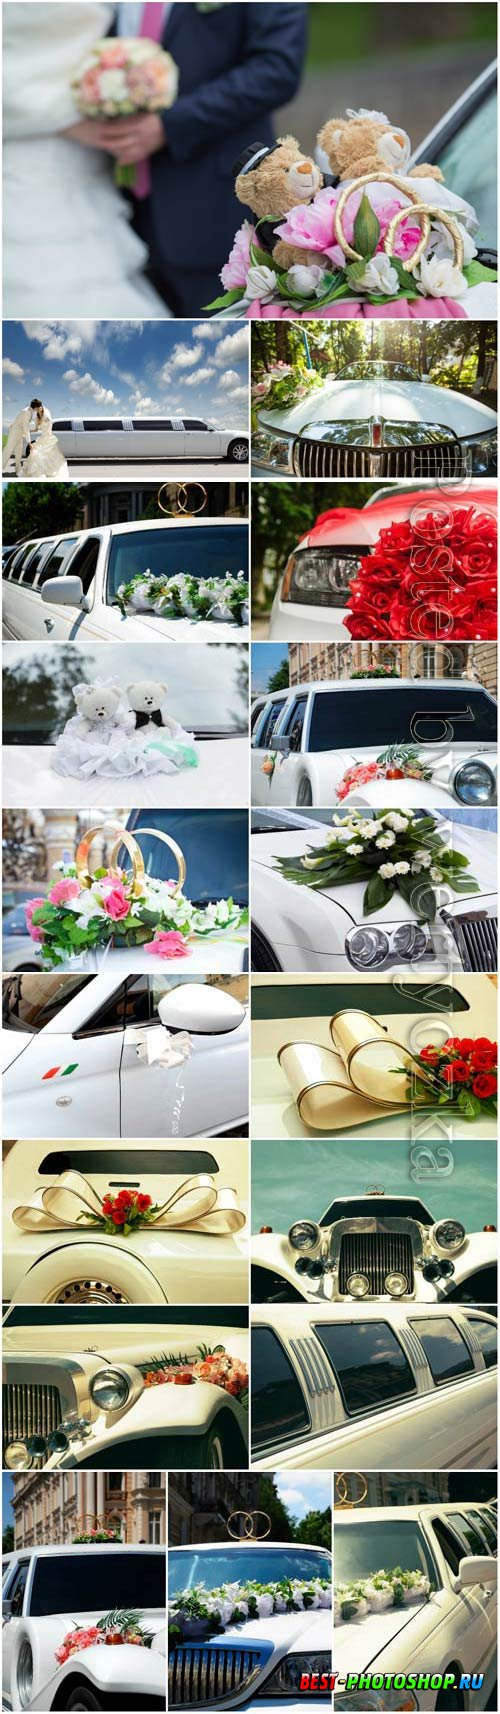 Decorated wedding cars, bride and groom stock photo